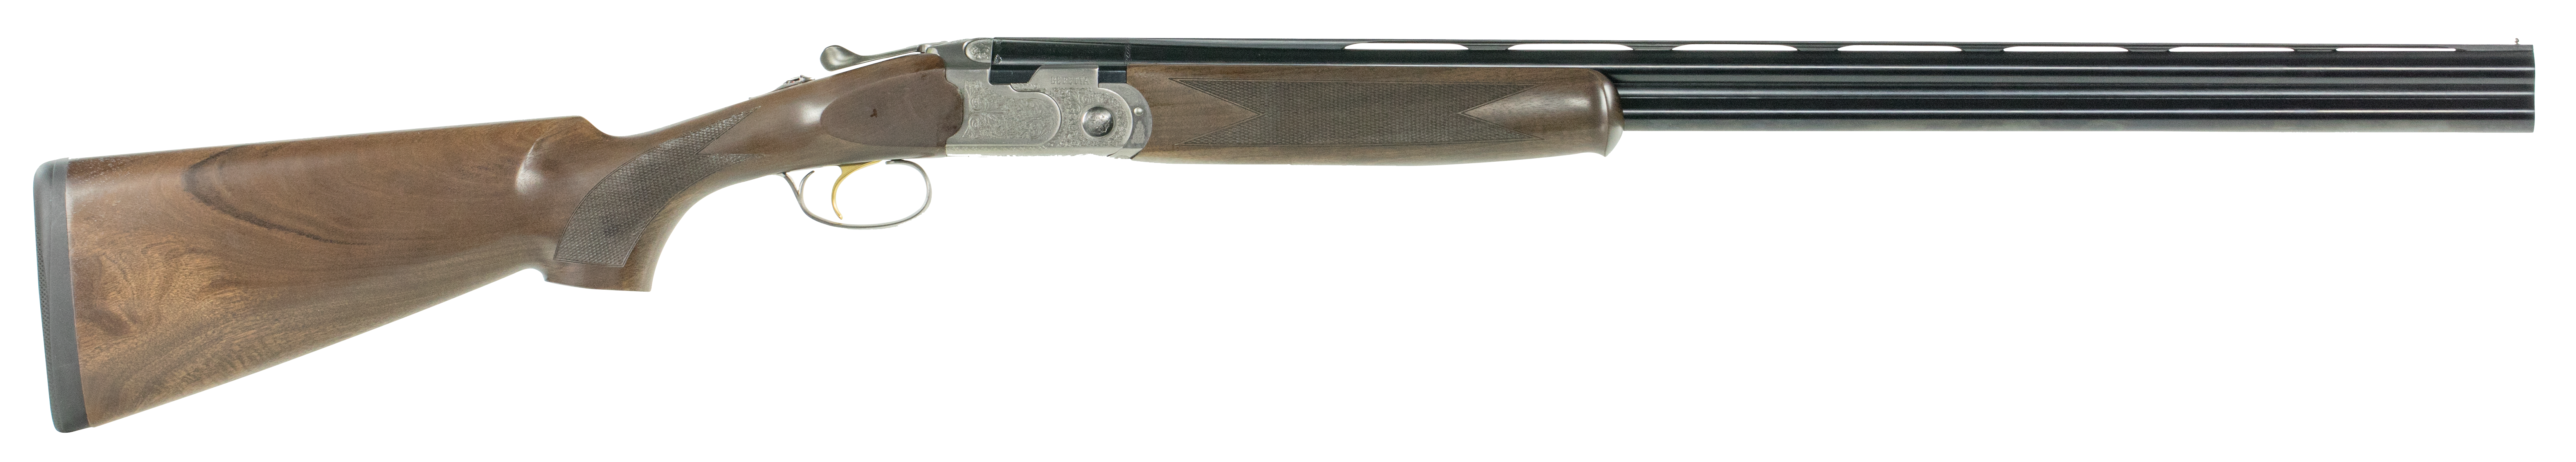 Beretta 686 Silver Pigeon I Over/Under Shotgun 3'' 410 Bore 26'' Silver Engraved - Walnut